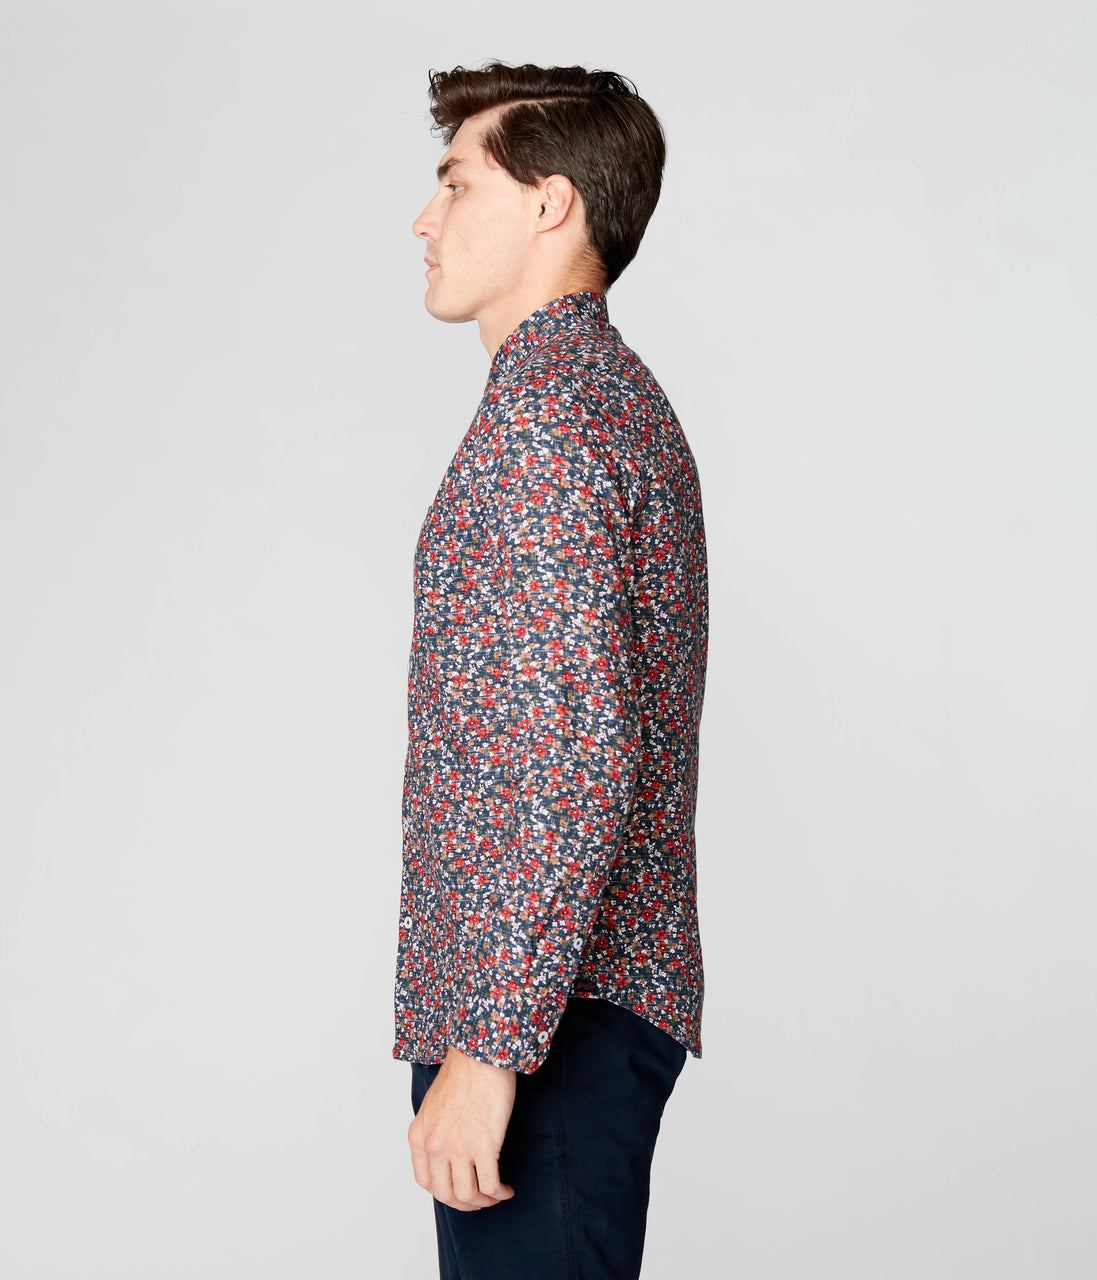 On-Point Print Shirt - Navy Luxembourg Floral - Good Man Brand - On-Point Print Shirt - Navy Luxembourg Floral